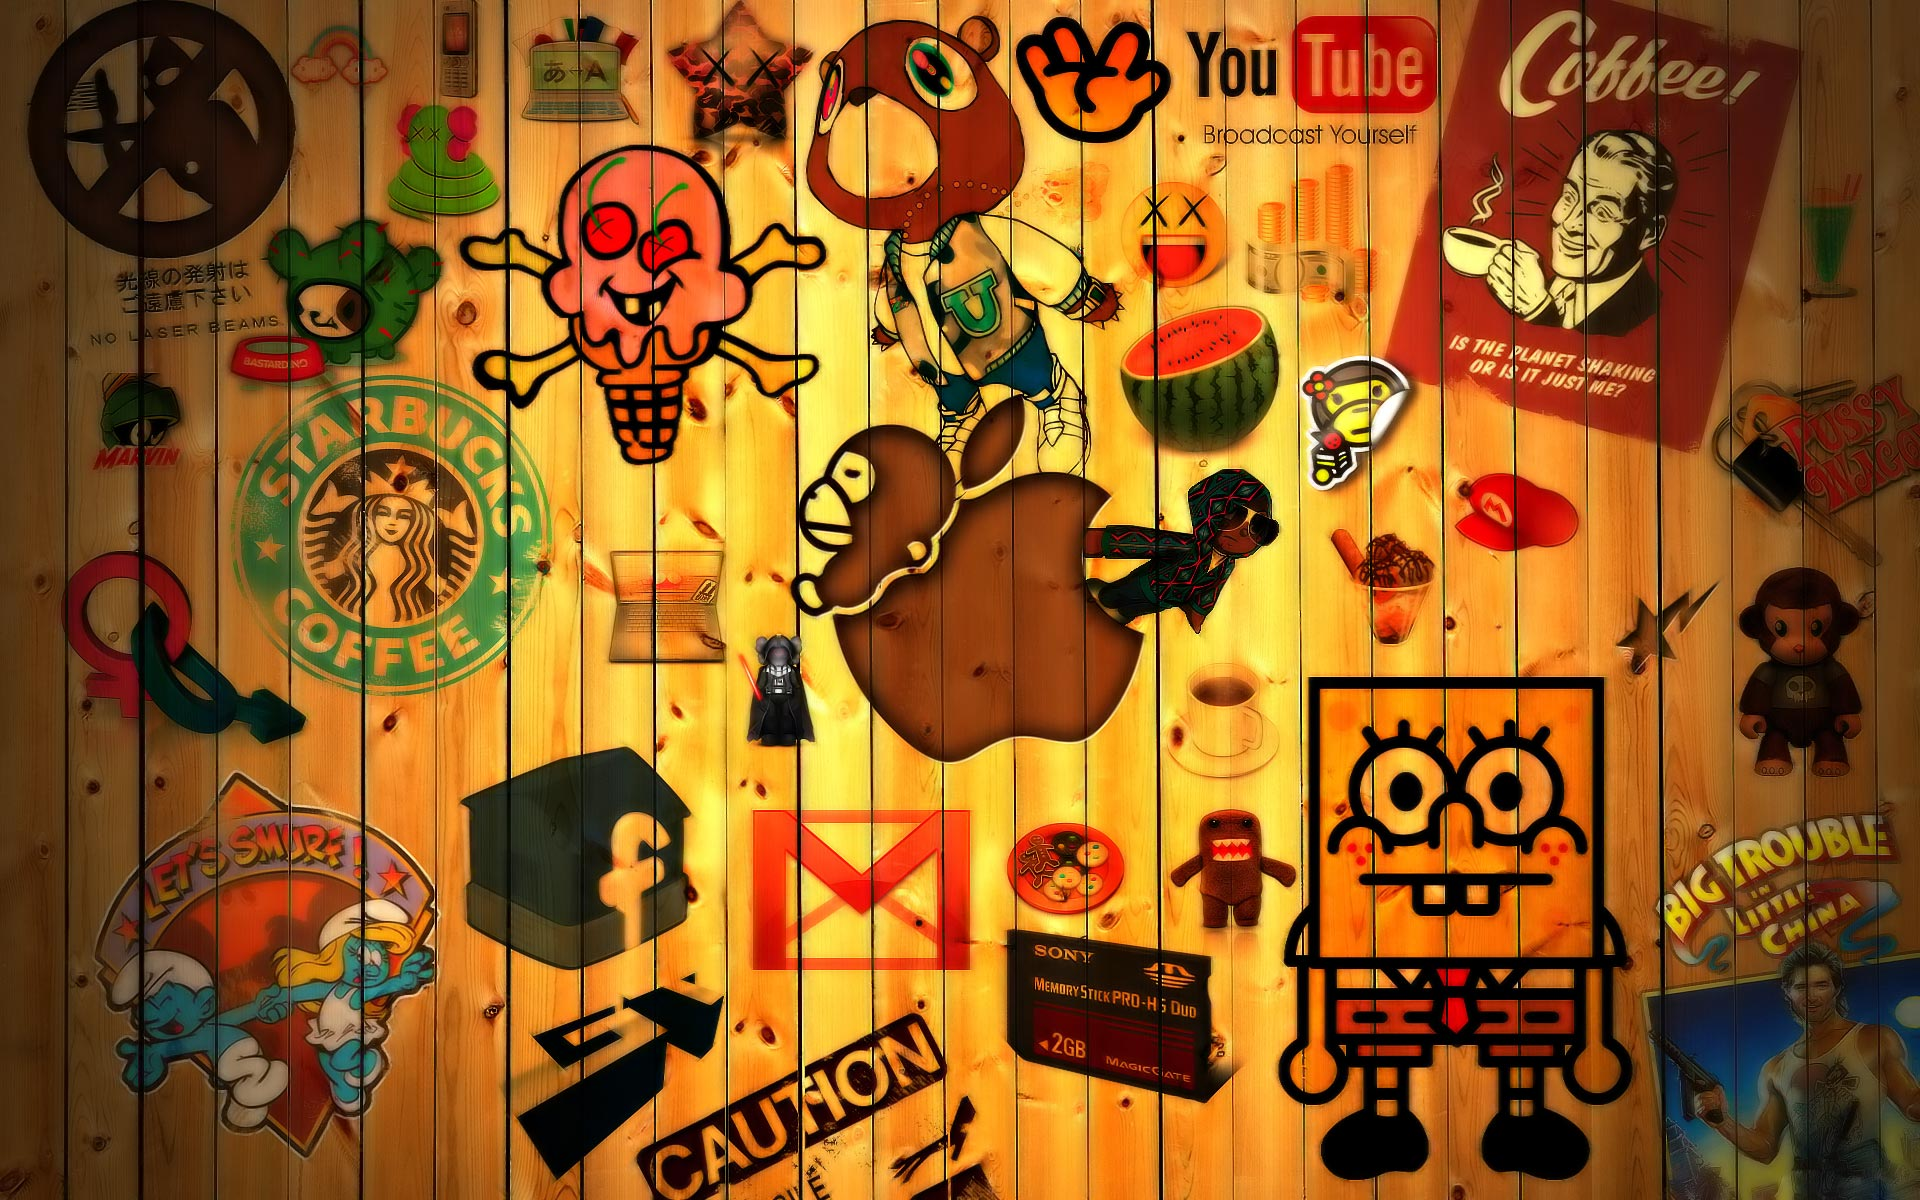 Top brands images hd wallpaper High Quality WallpapersWallpaper 1920x1200